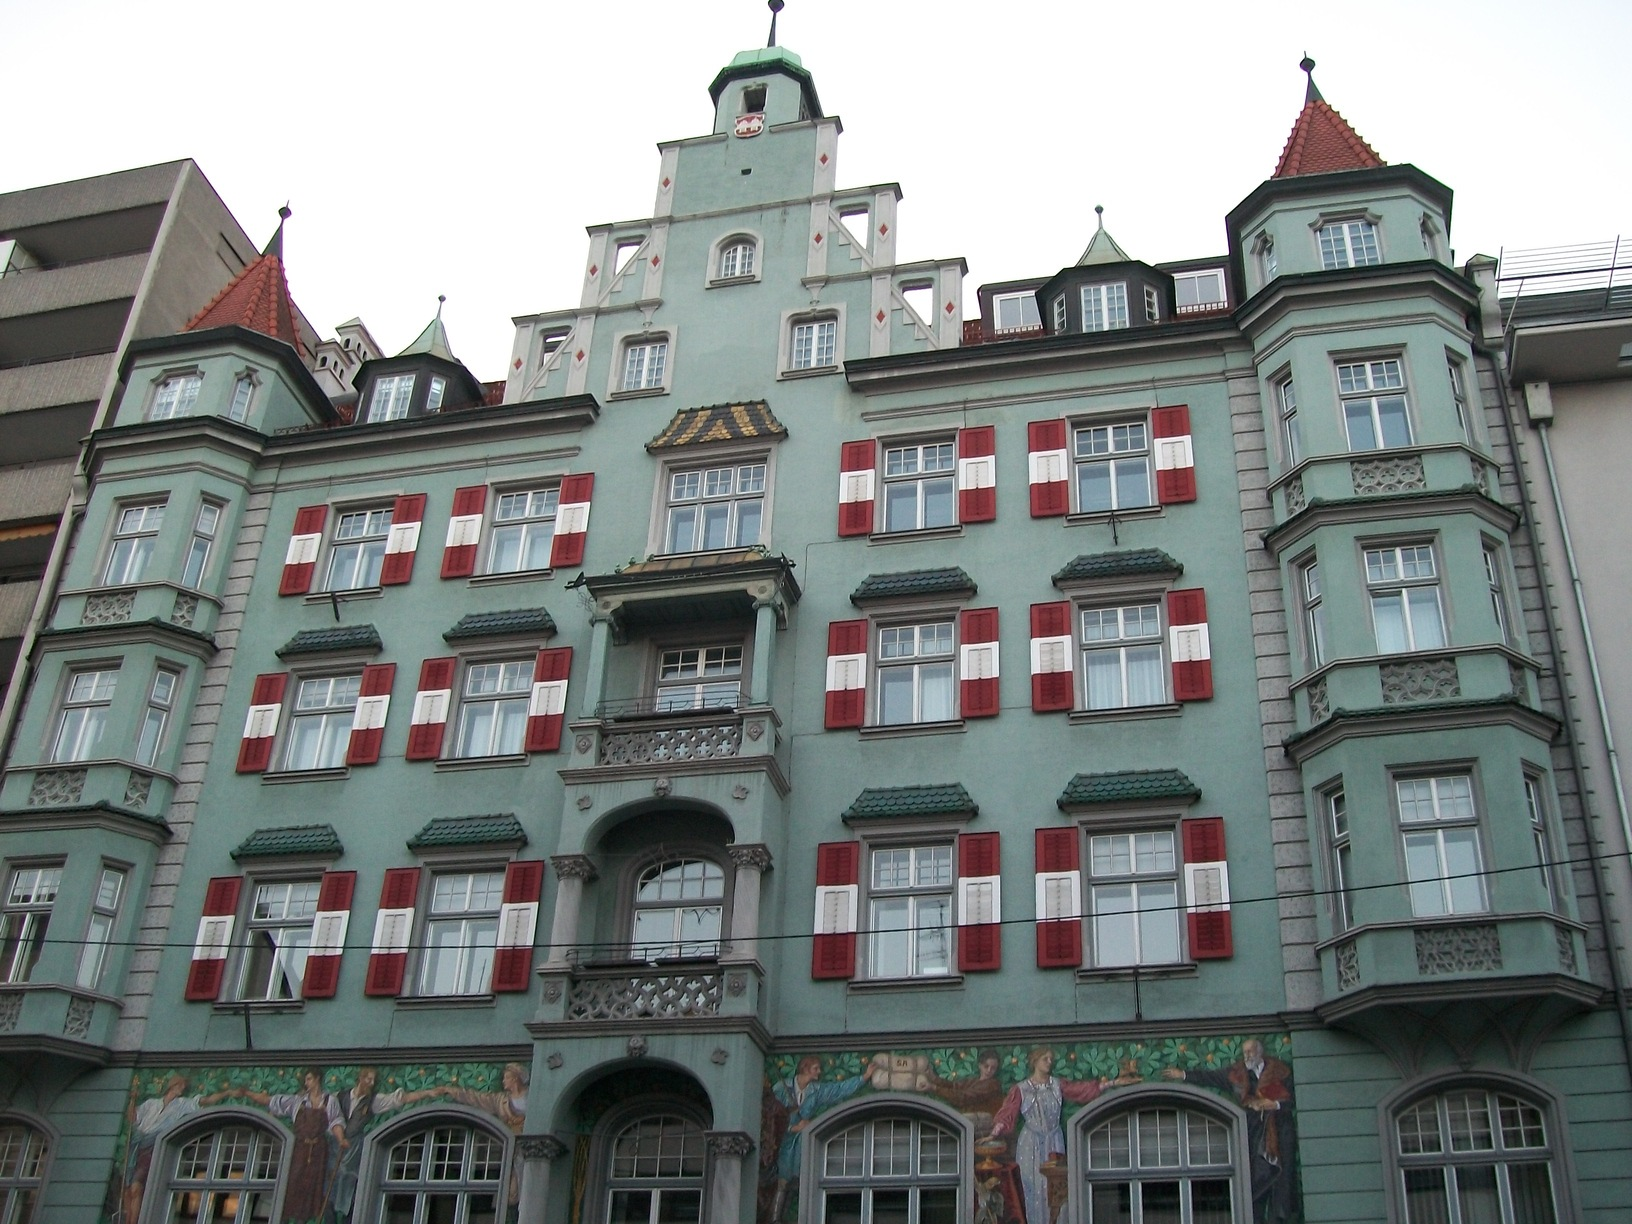 Window shutters in the Austrian national colours.